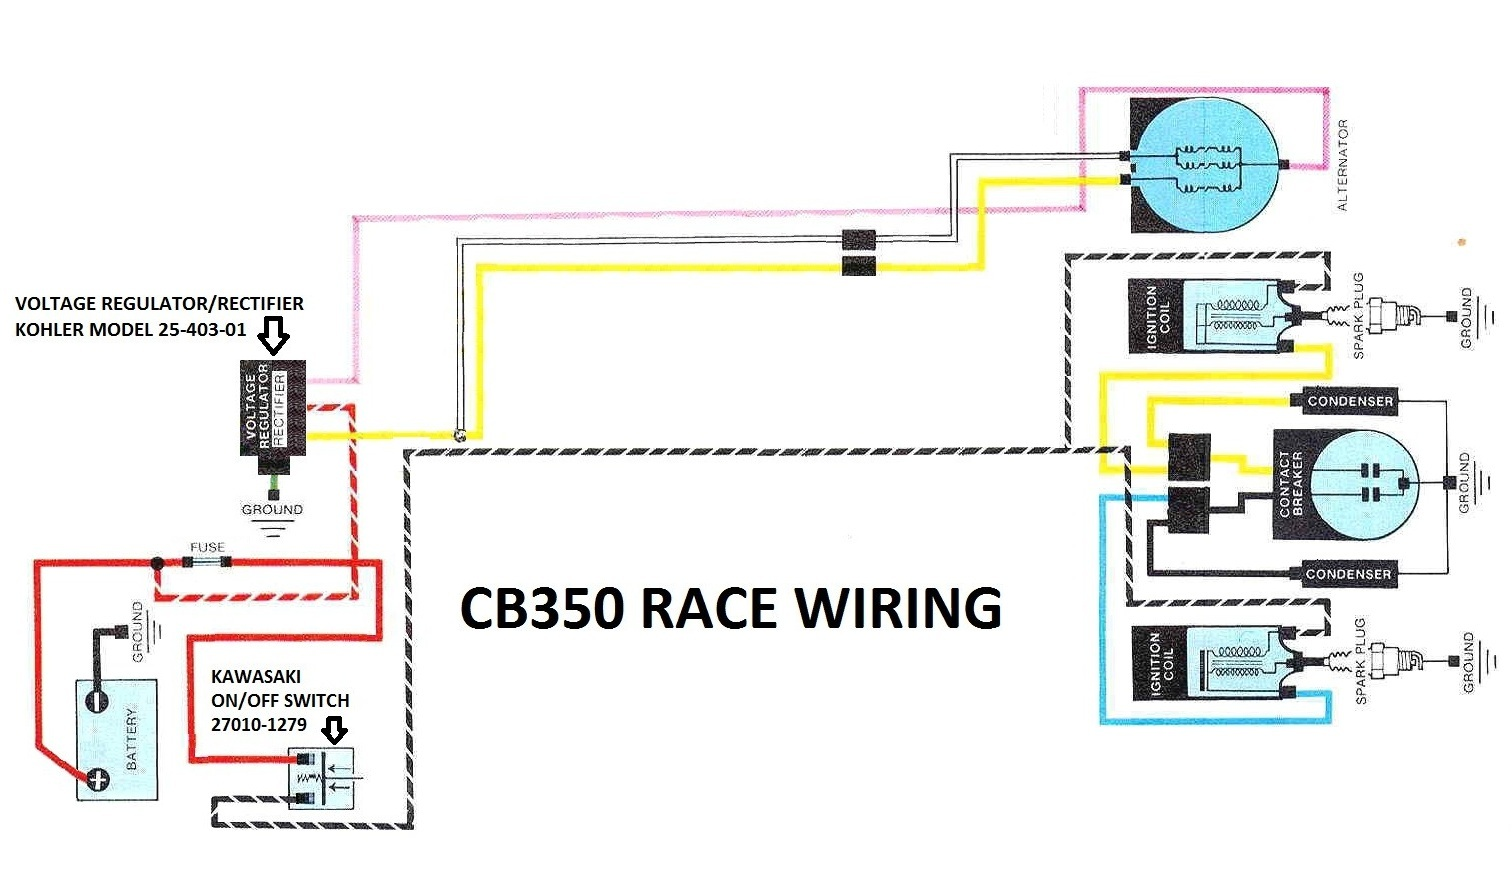 hight resolution of cb350 stator wiring diagram wiring diagram librariescb350 stator wiring diagram wiring diagram for youhonda cx500 wiring